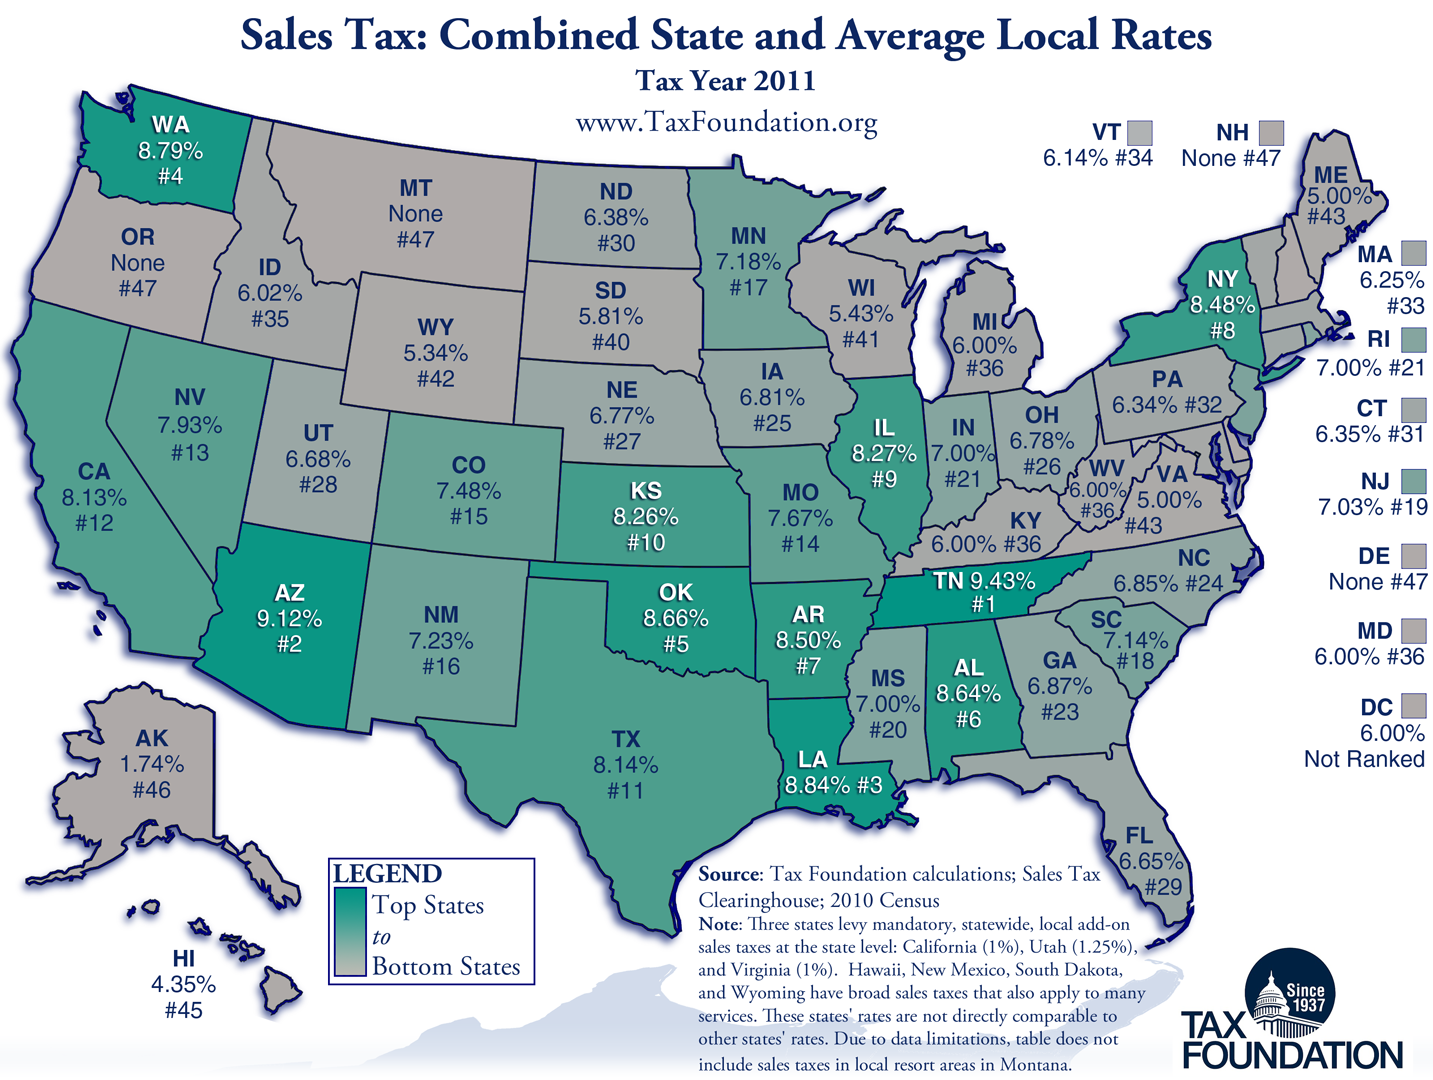 Pay Indiana Sales Tax >> Combined State and Local Sales Taxes: New Report | Tax Foundation